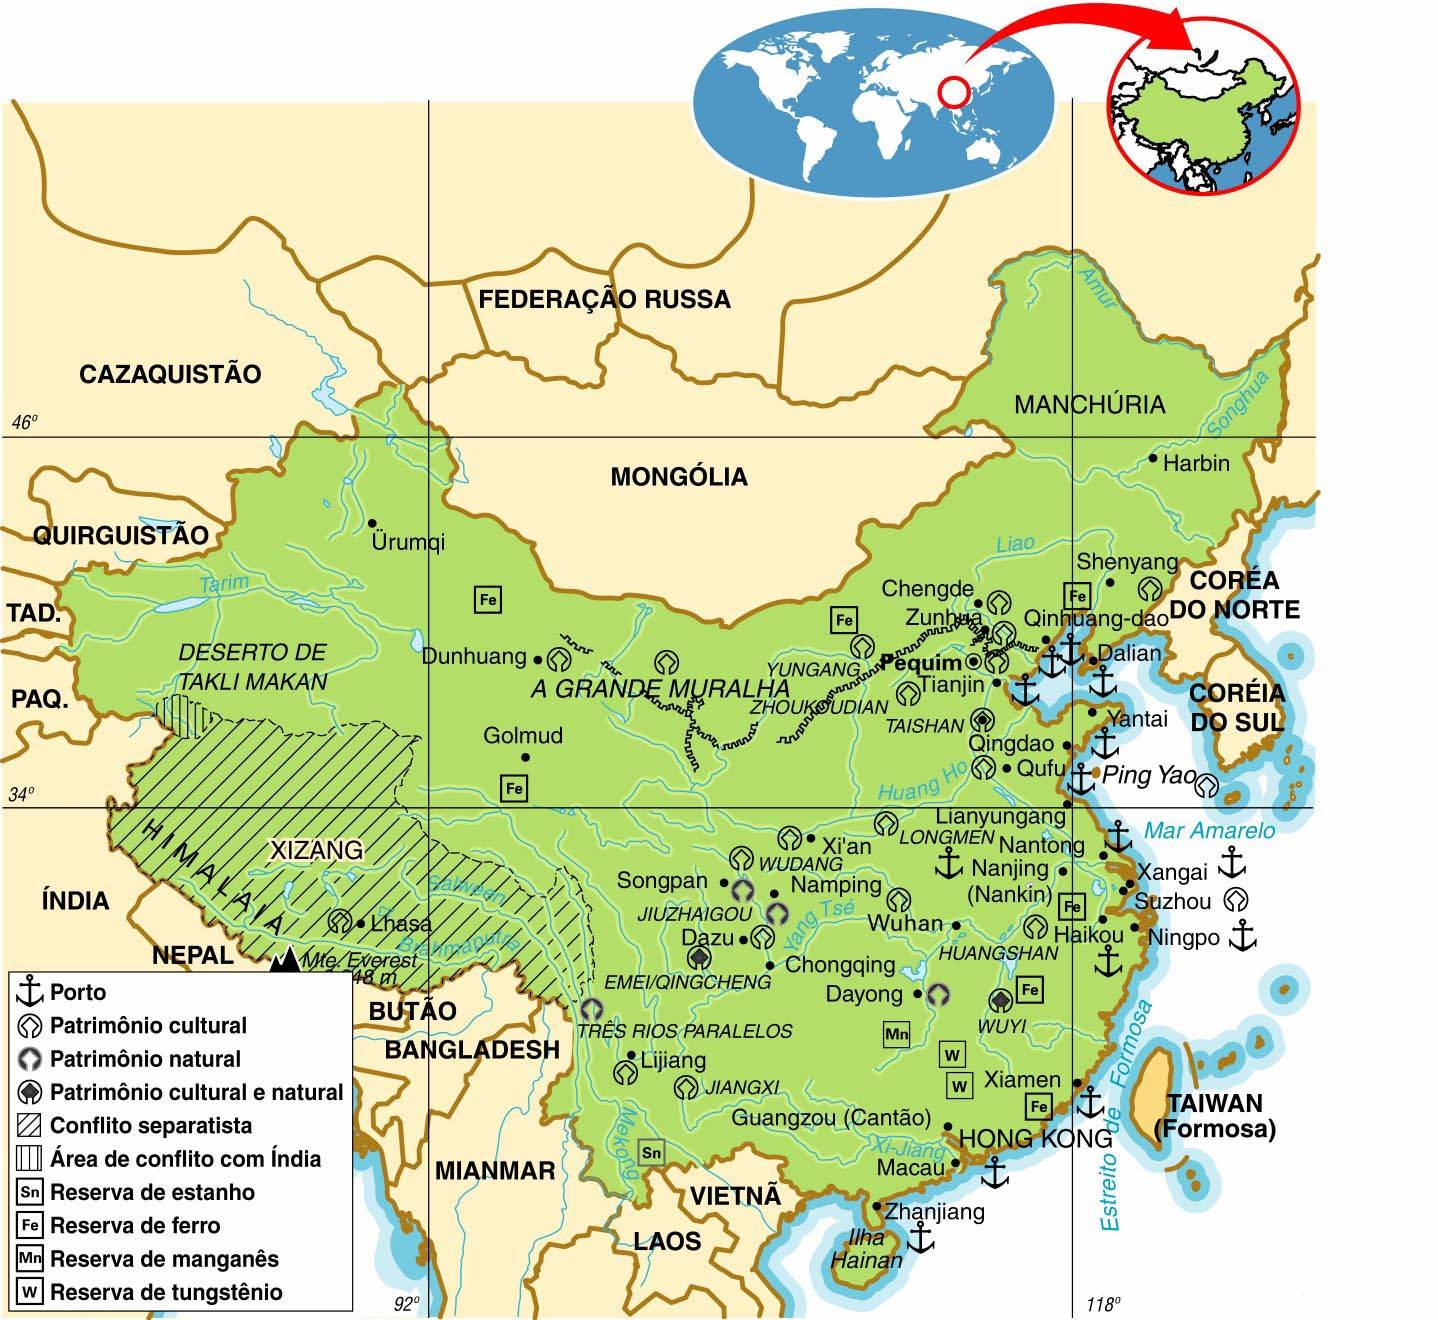 China - Aspectos Geográficos e Sociais da China